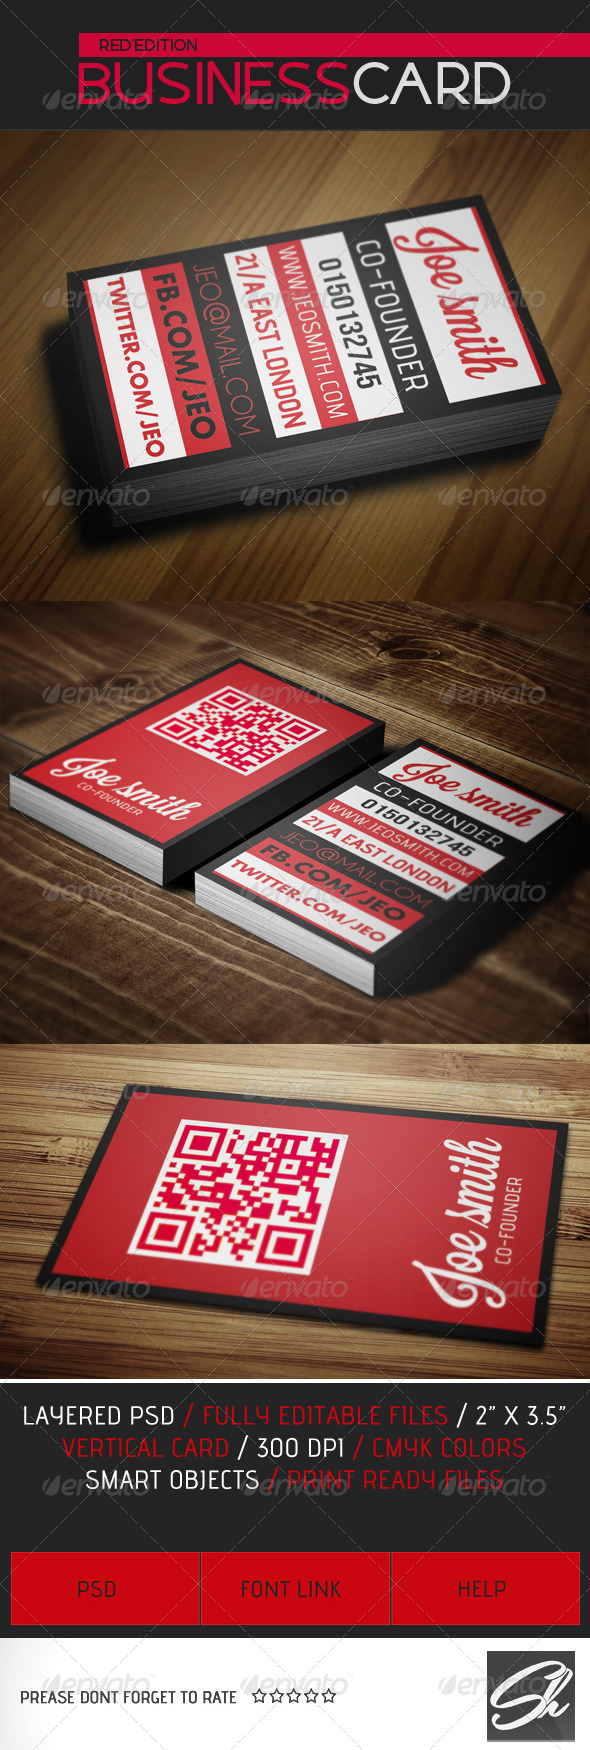 GraphicRiver Premium Business Card Red Edition 4520811